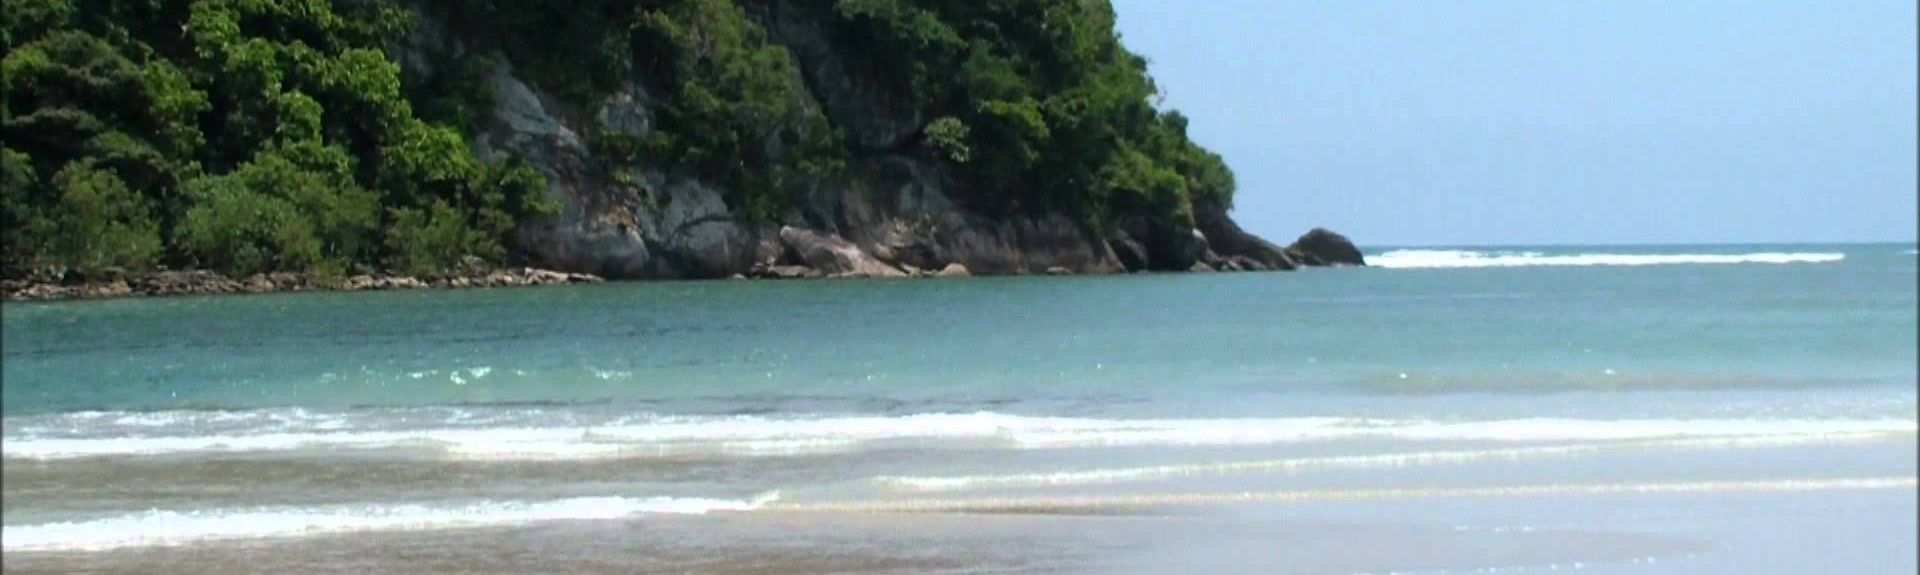 Barra do Sahy Beach, Sao Sebastiao, Brazil